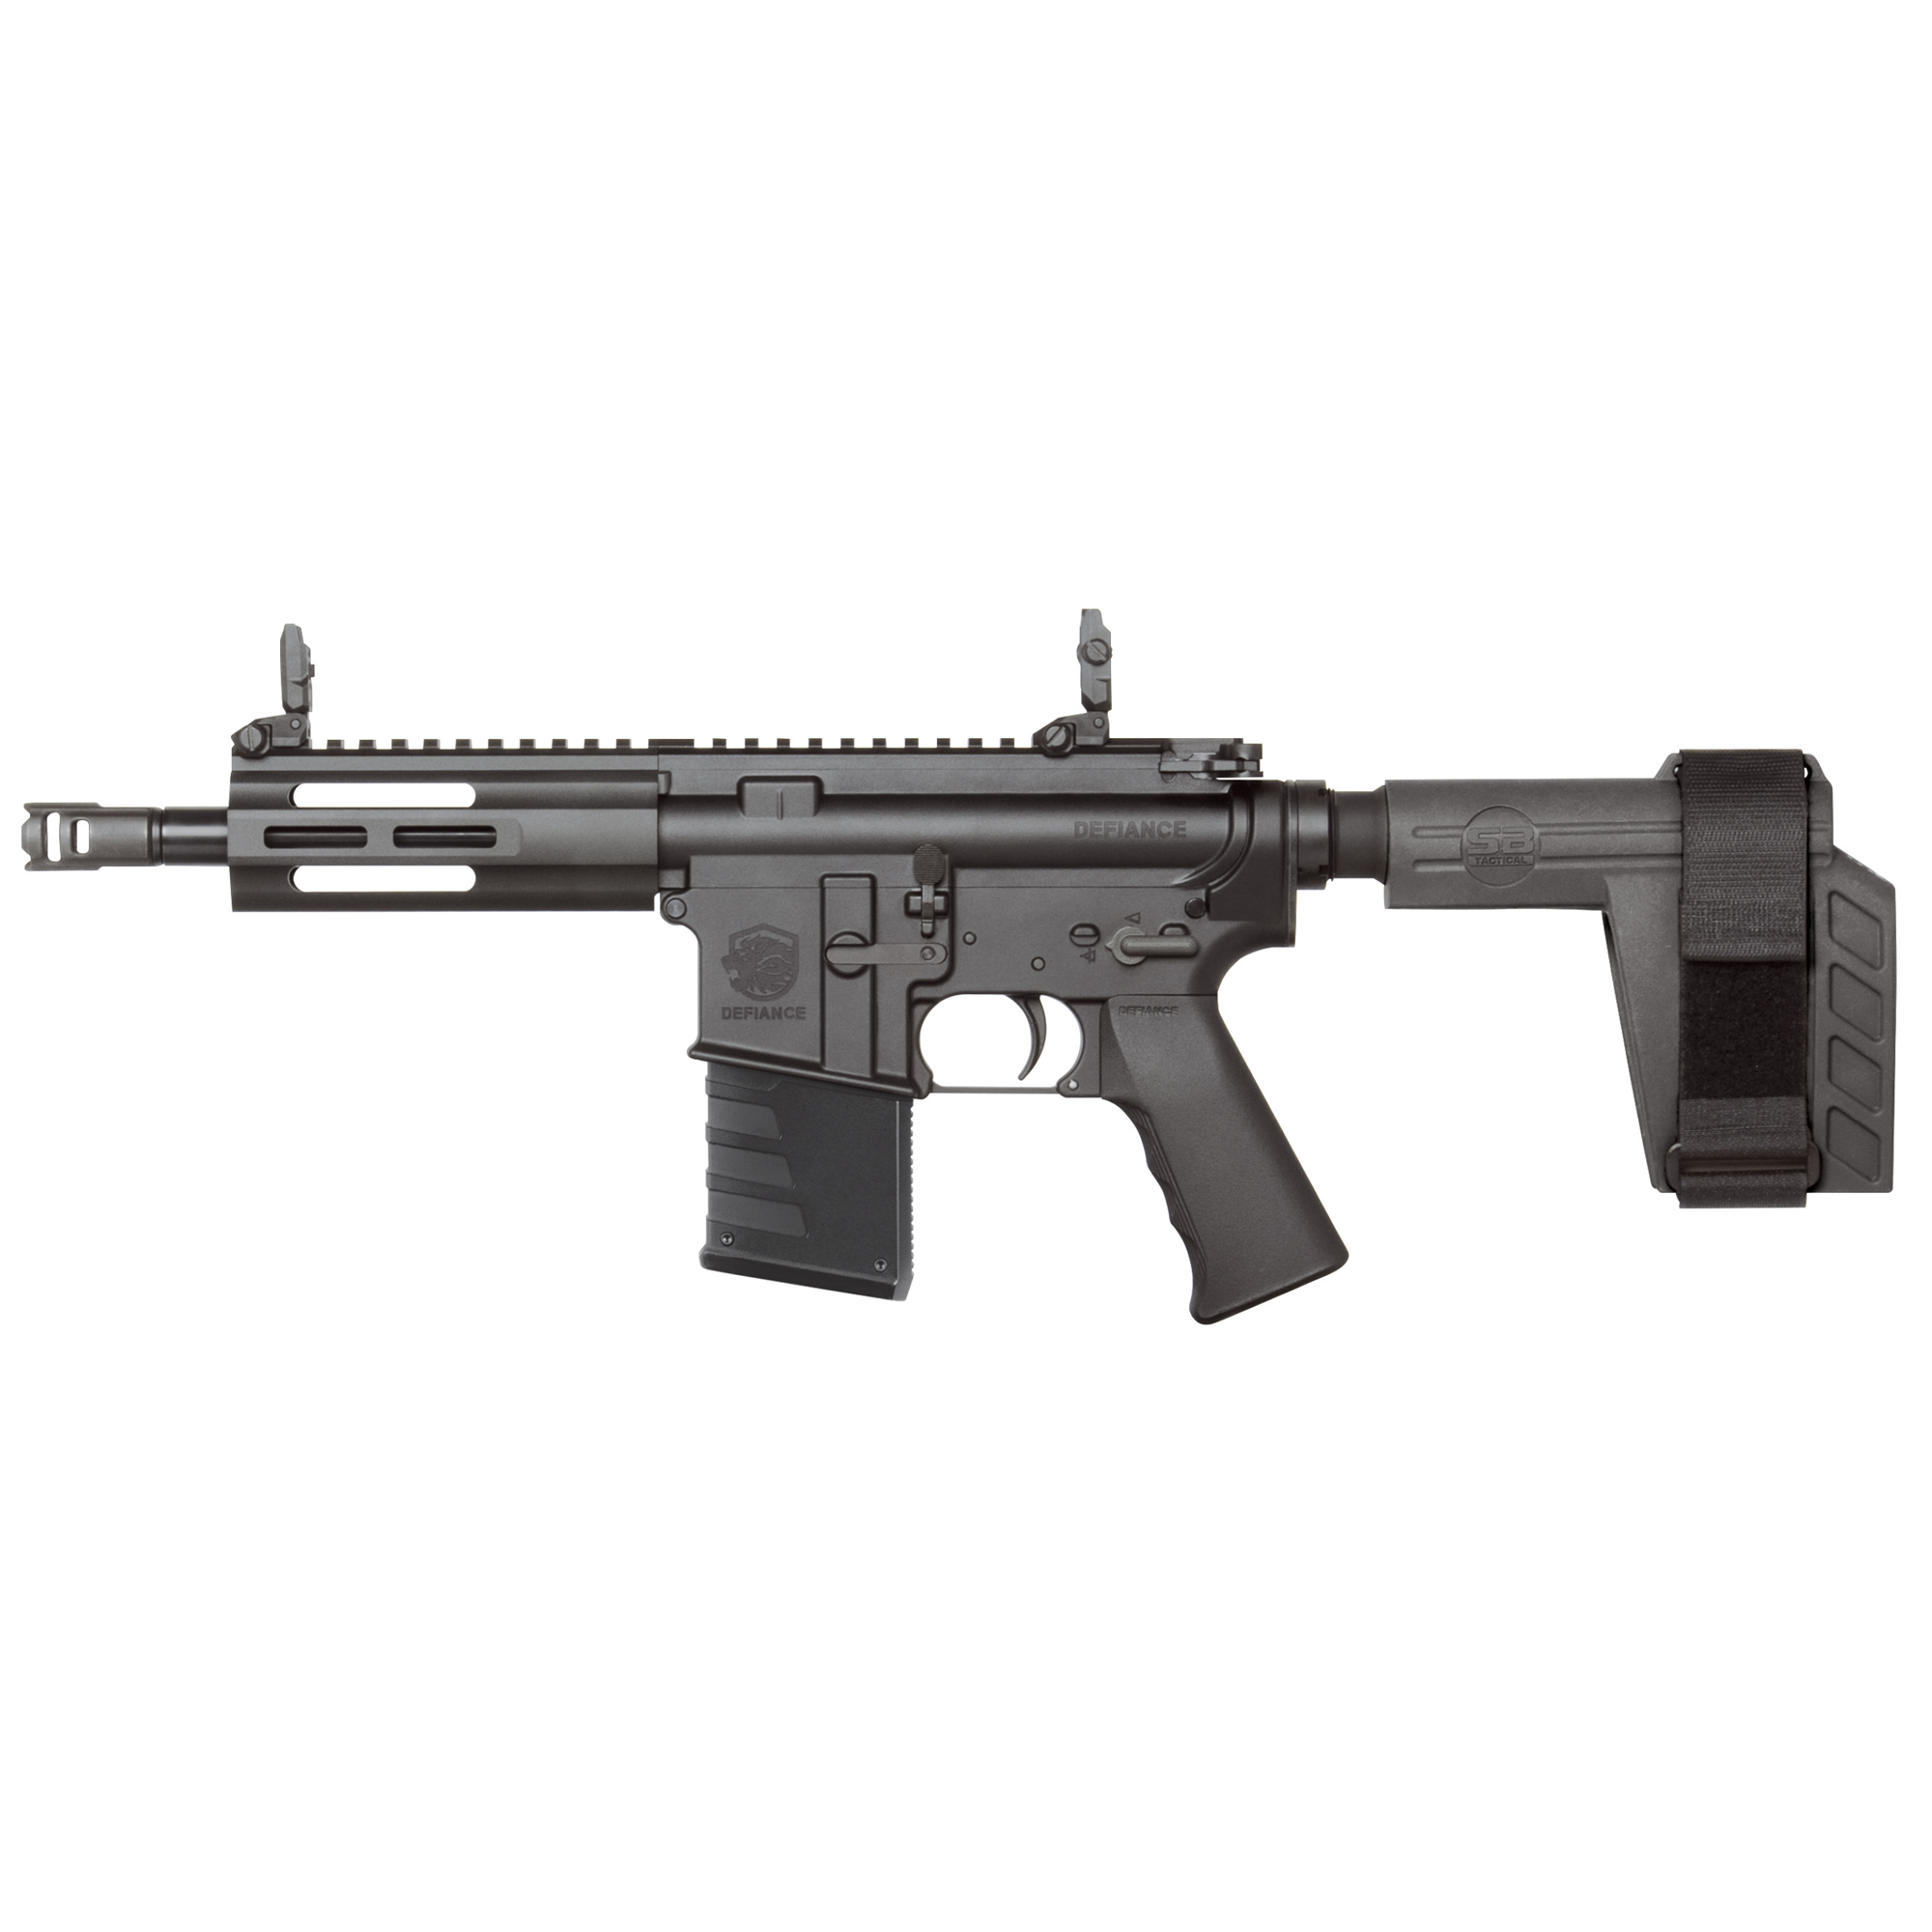 """The Kriss DMK22P-SB features forged 7075-T6 aluminum receivers"""" the SB Tactical SBX-K Stabilizing Arm Brace"""" a pistol Grip"""" QD rear sling swivel"""" low profile flip up sights"""" bolt lock"""" forward assist"""" and full size dust cover. It is compatible with most MIL-SPEC AR-15 trigger kits and charging handles."""